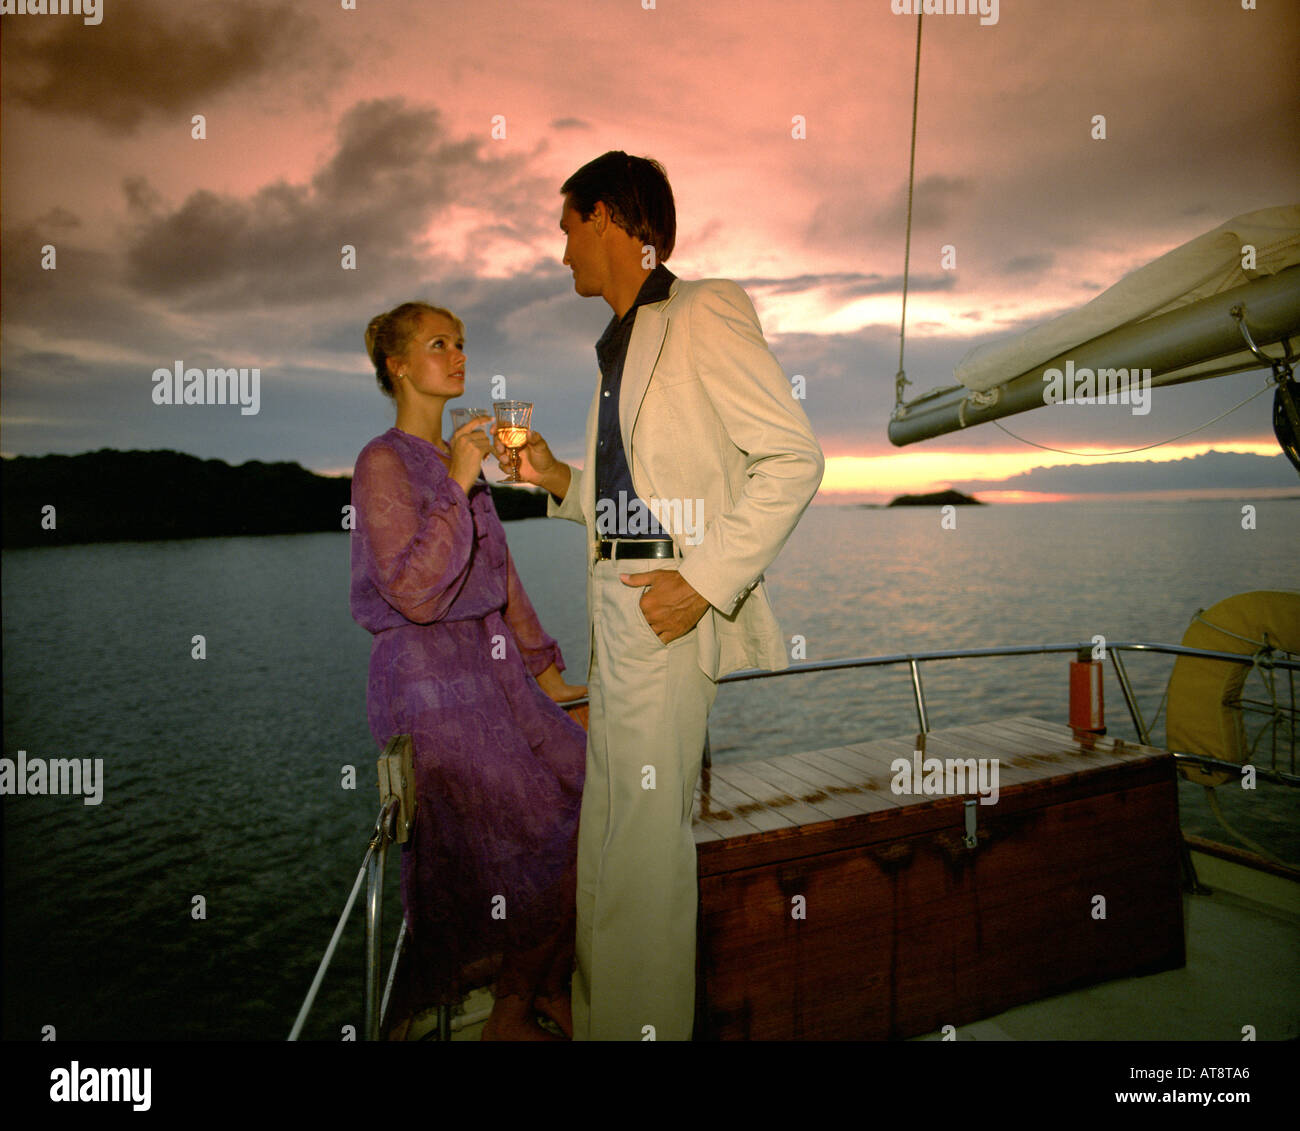 BS -THE BAHAMAS:  Romantic evening on board of yacht - Stock Image